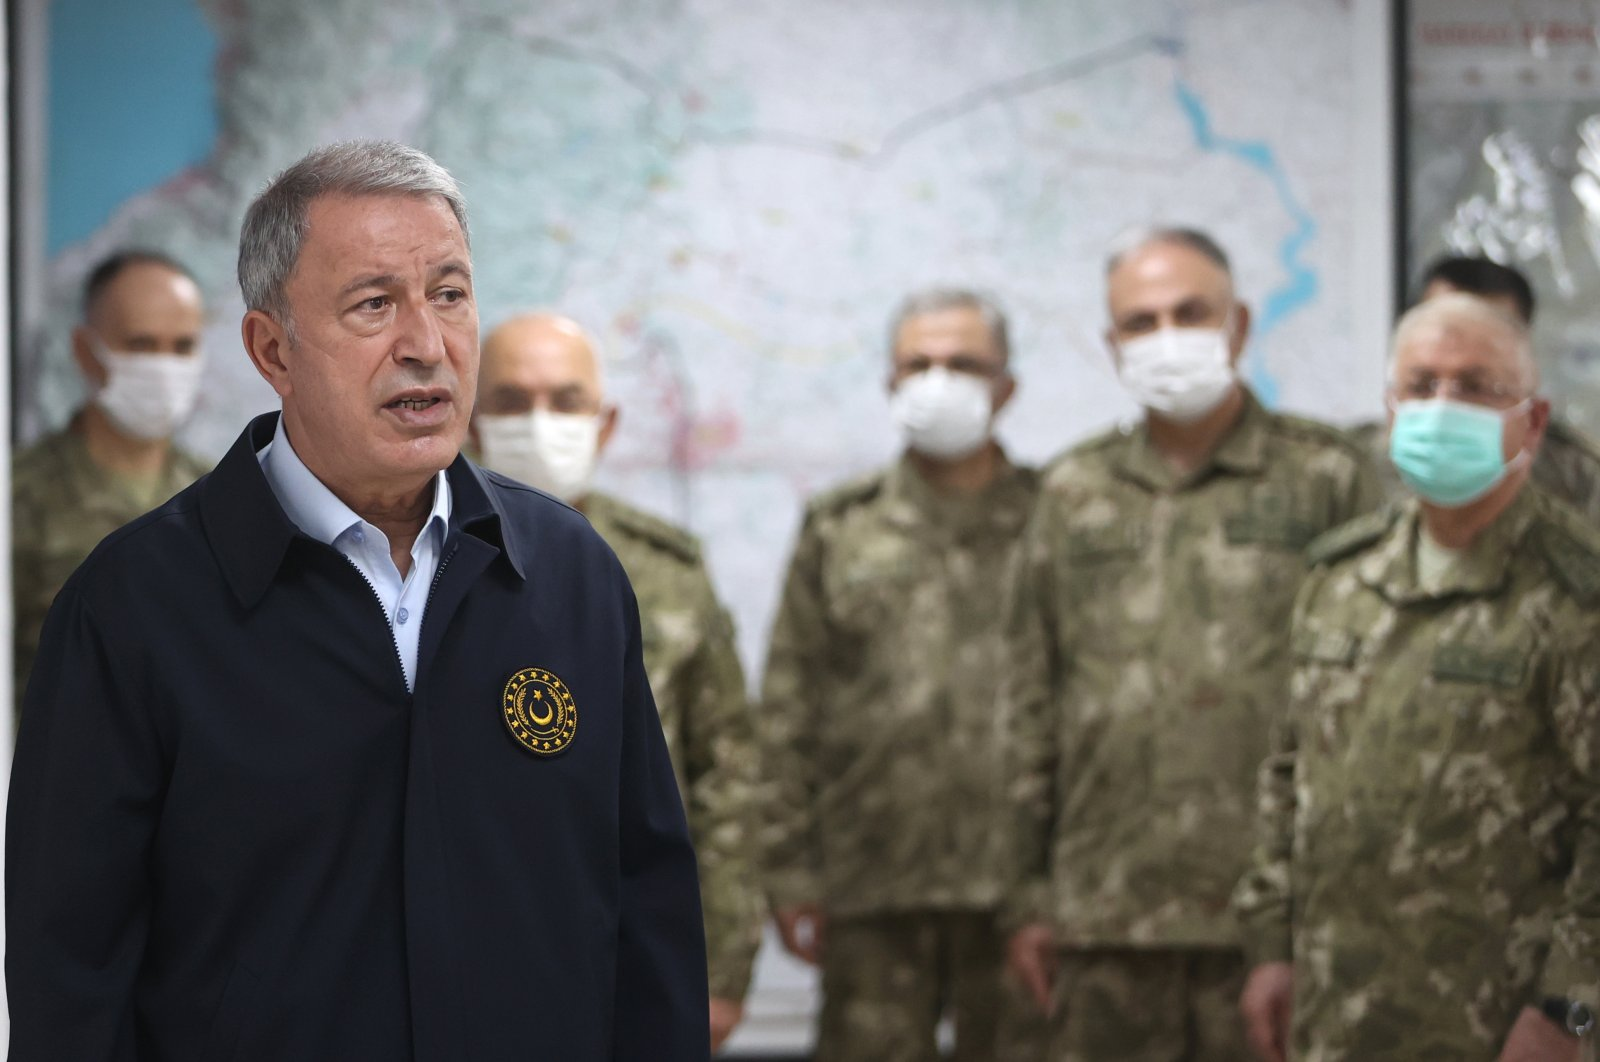 Defense Minister Hulusi Akar, who visited the Turkey-Syria border, is seen here with commanders, Hatay, Turkey, July 27, 2021. (AA File Photo)